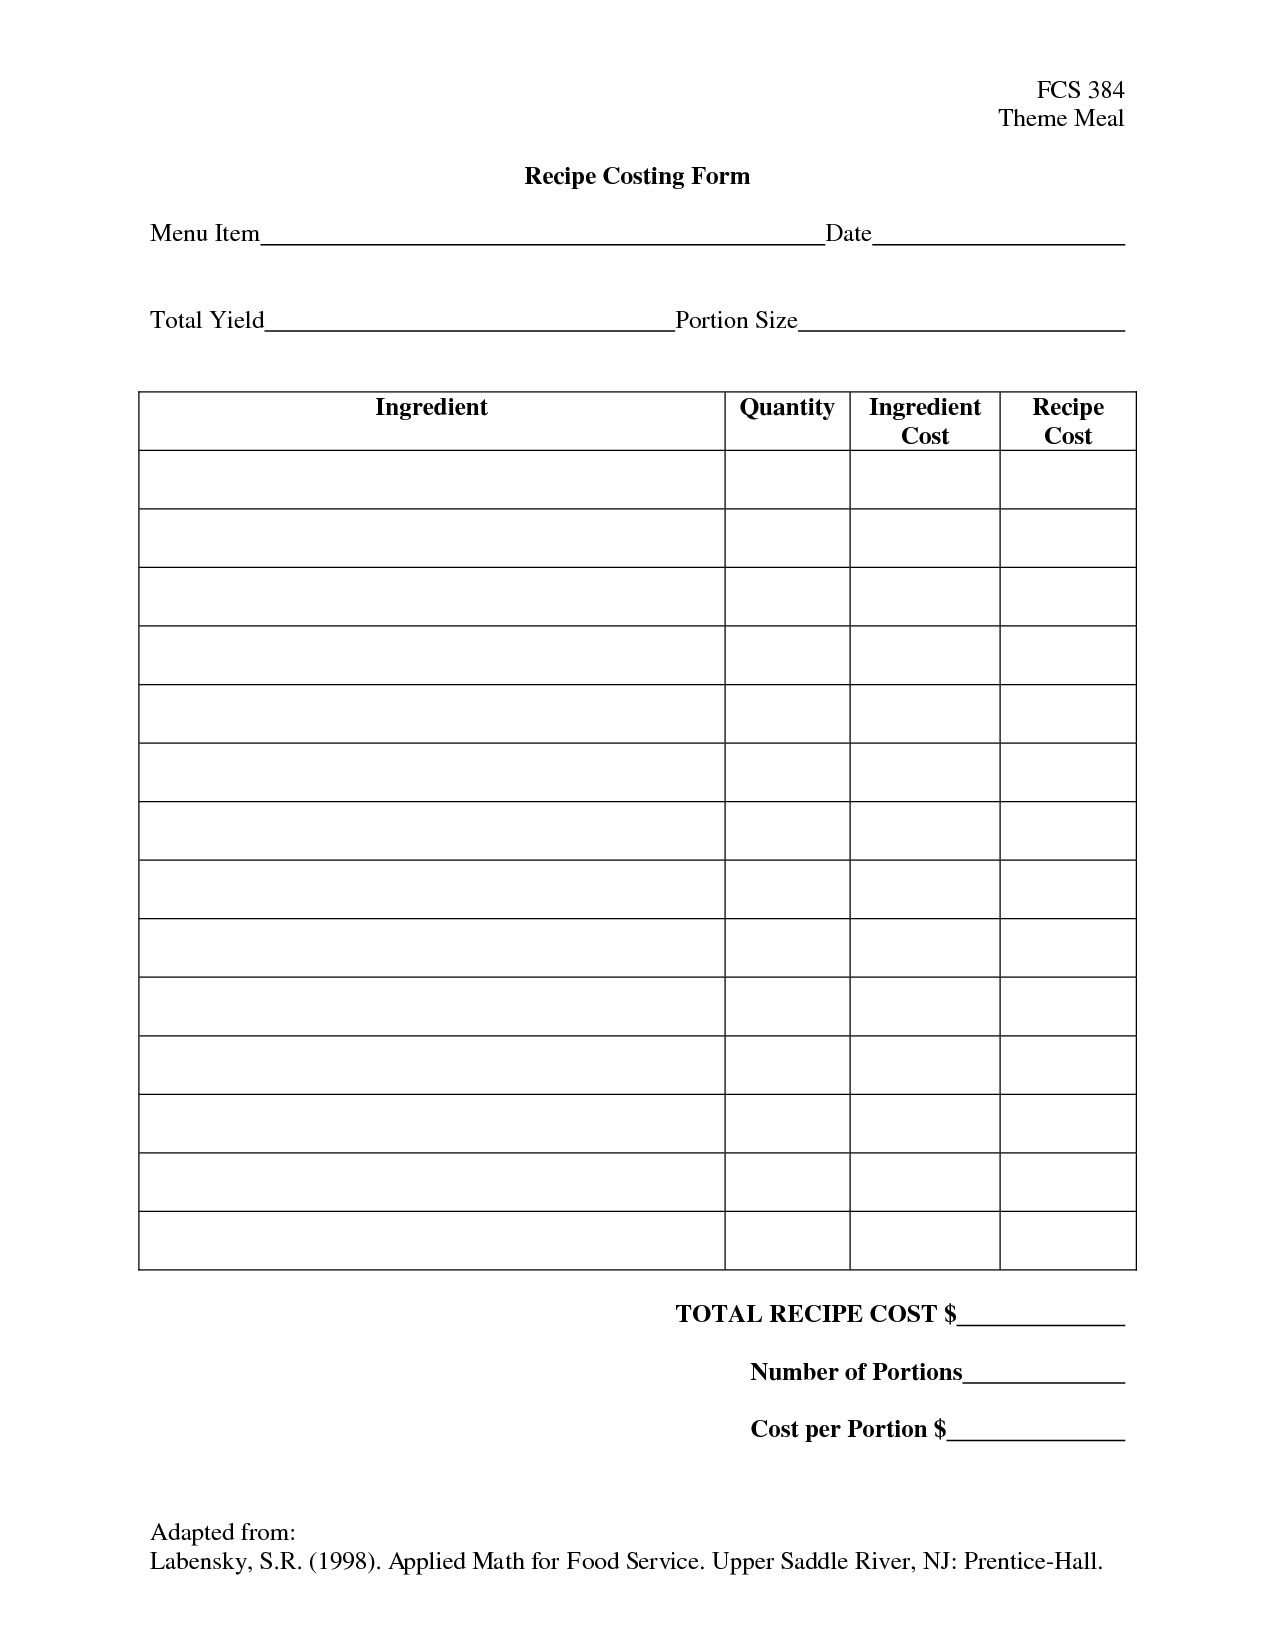 Menu And Recipe Cost Spreadsheet Template Within Recipe Costing Template